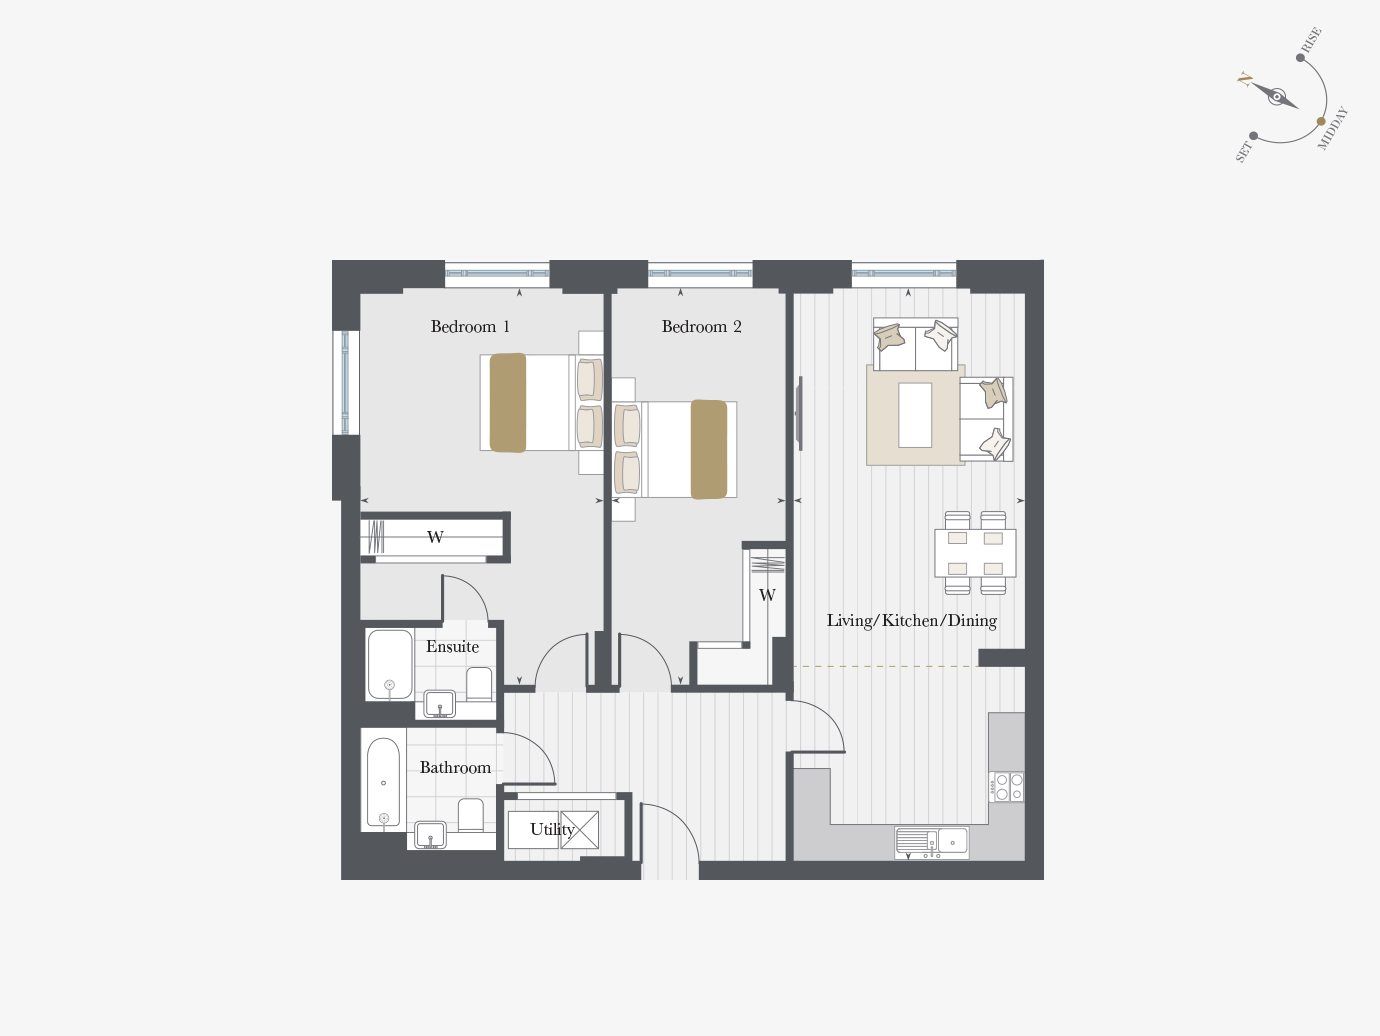 Floorplan for Apartment P0/01 at City Wharf, Ground